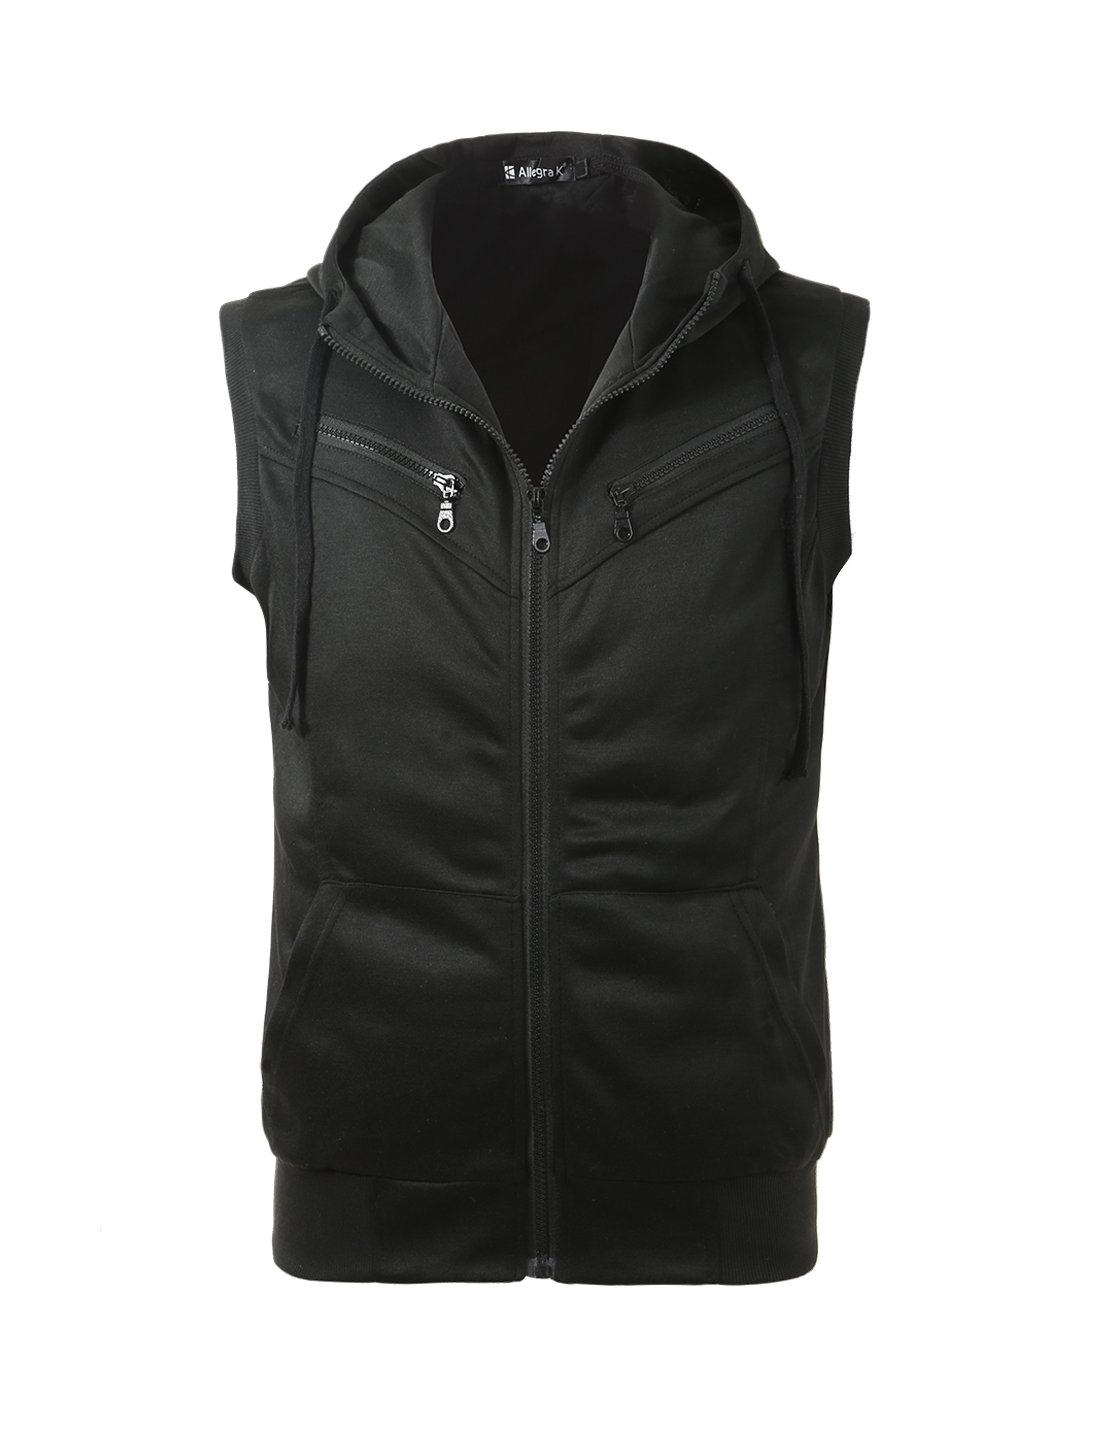 uxcell Men Zip Up Front Pockets Detail Ribbing Hem Leisure Hoody Vest Black M US 38 by uxcell